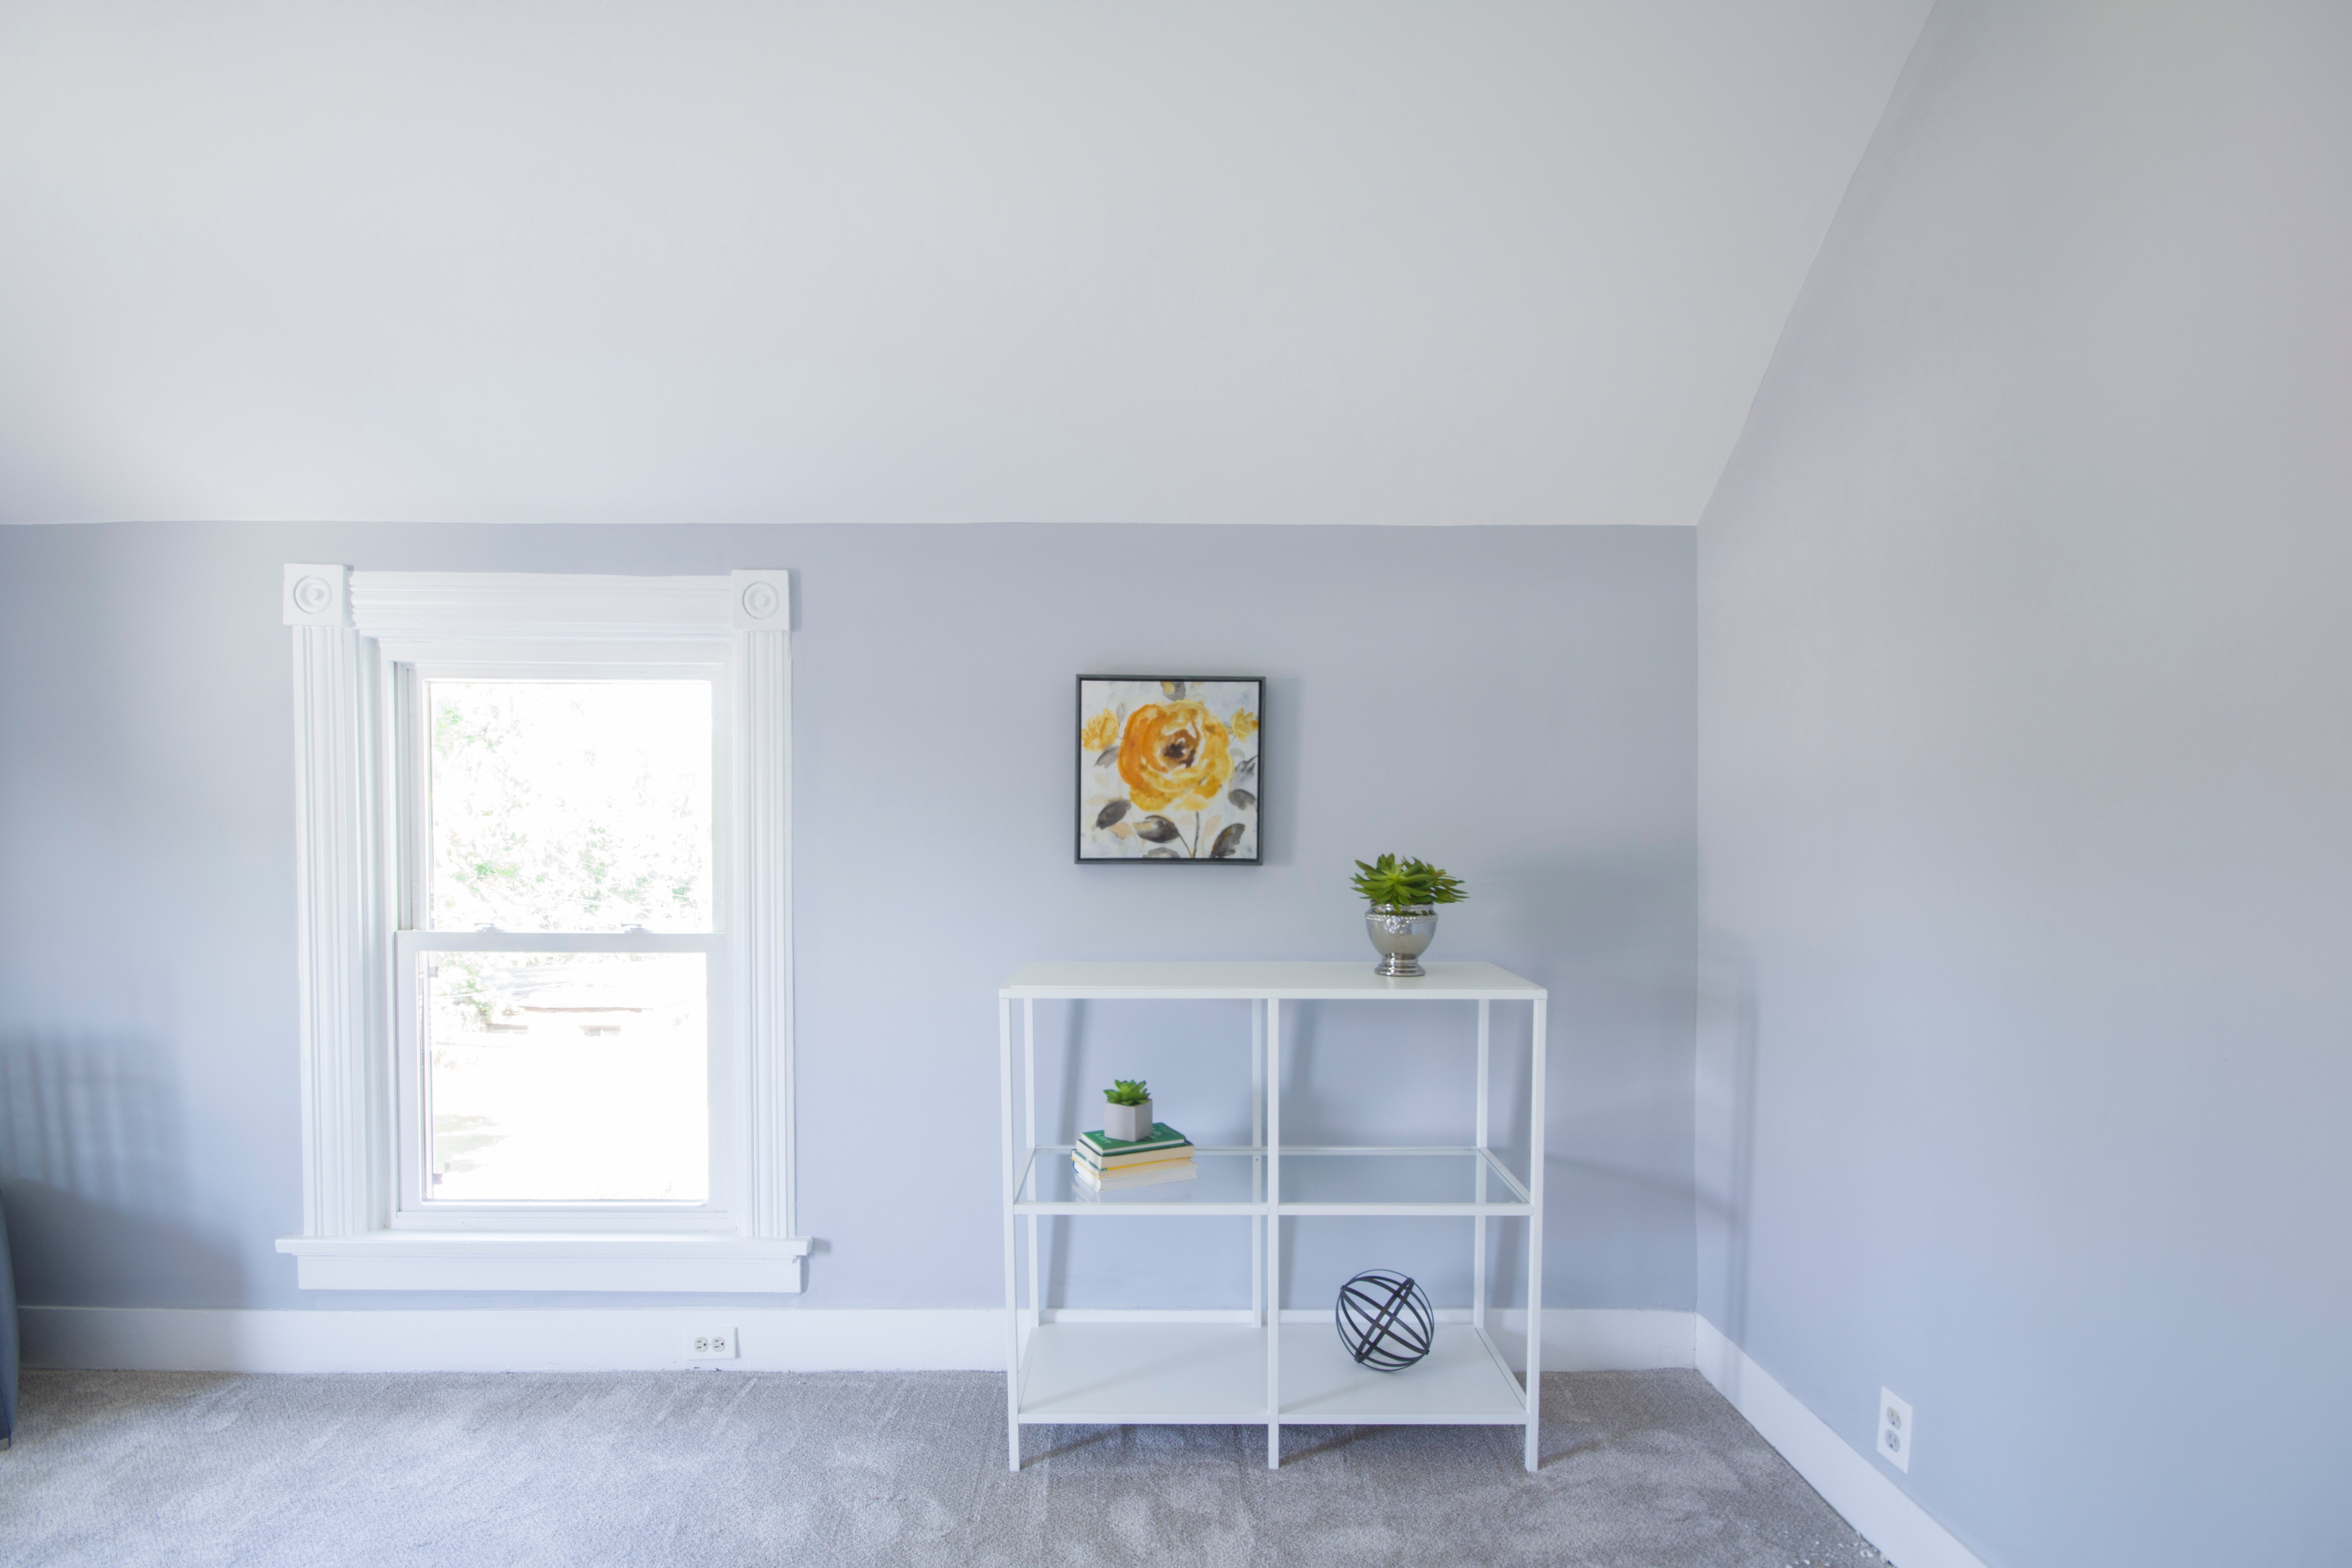 a minimalist white room with a simple shelf holding 3 succulents, a painting of a sunflower sits behind